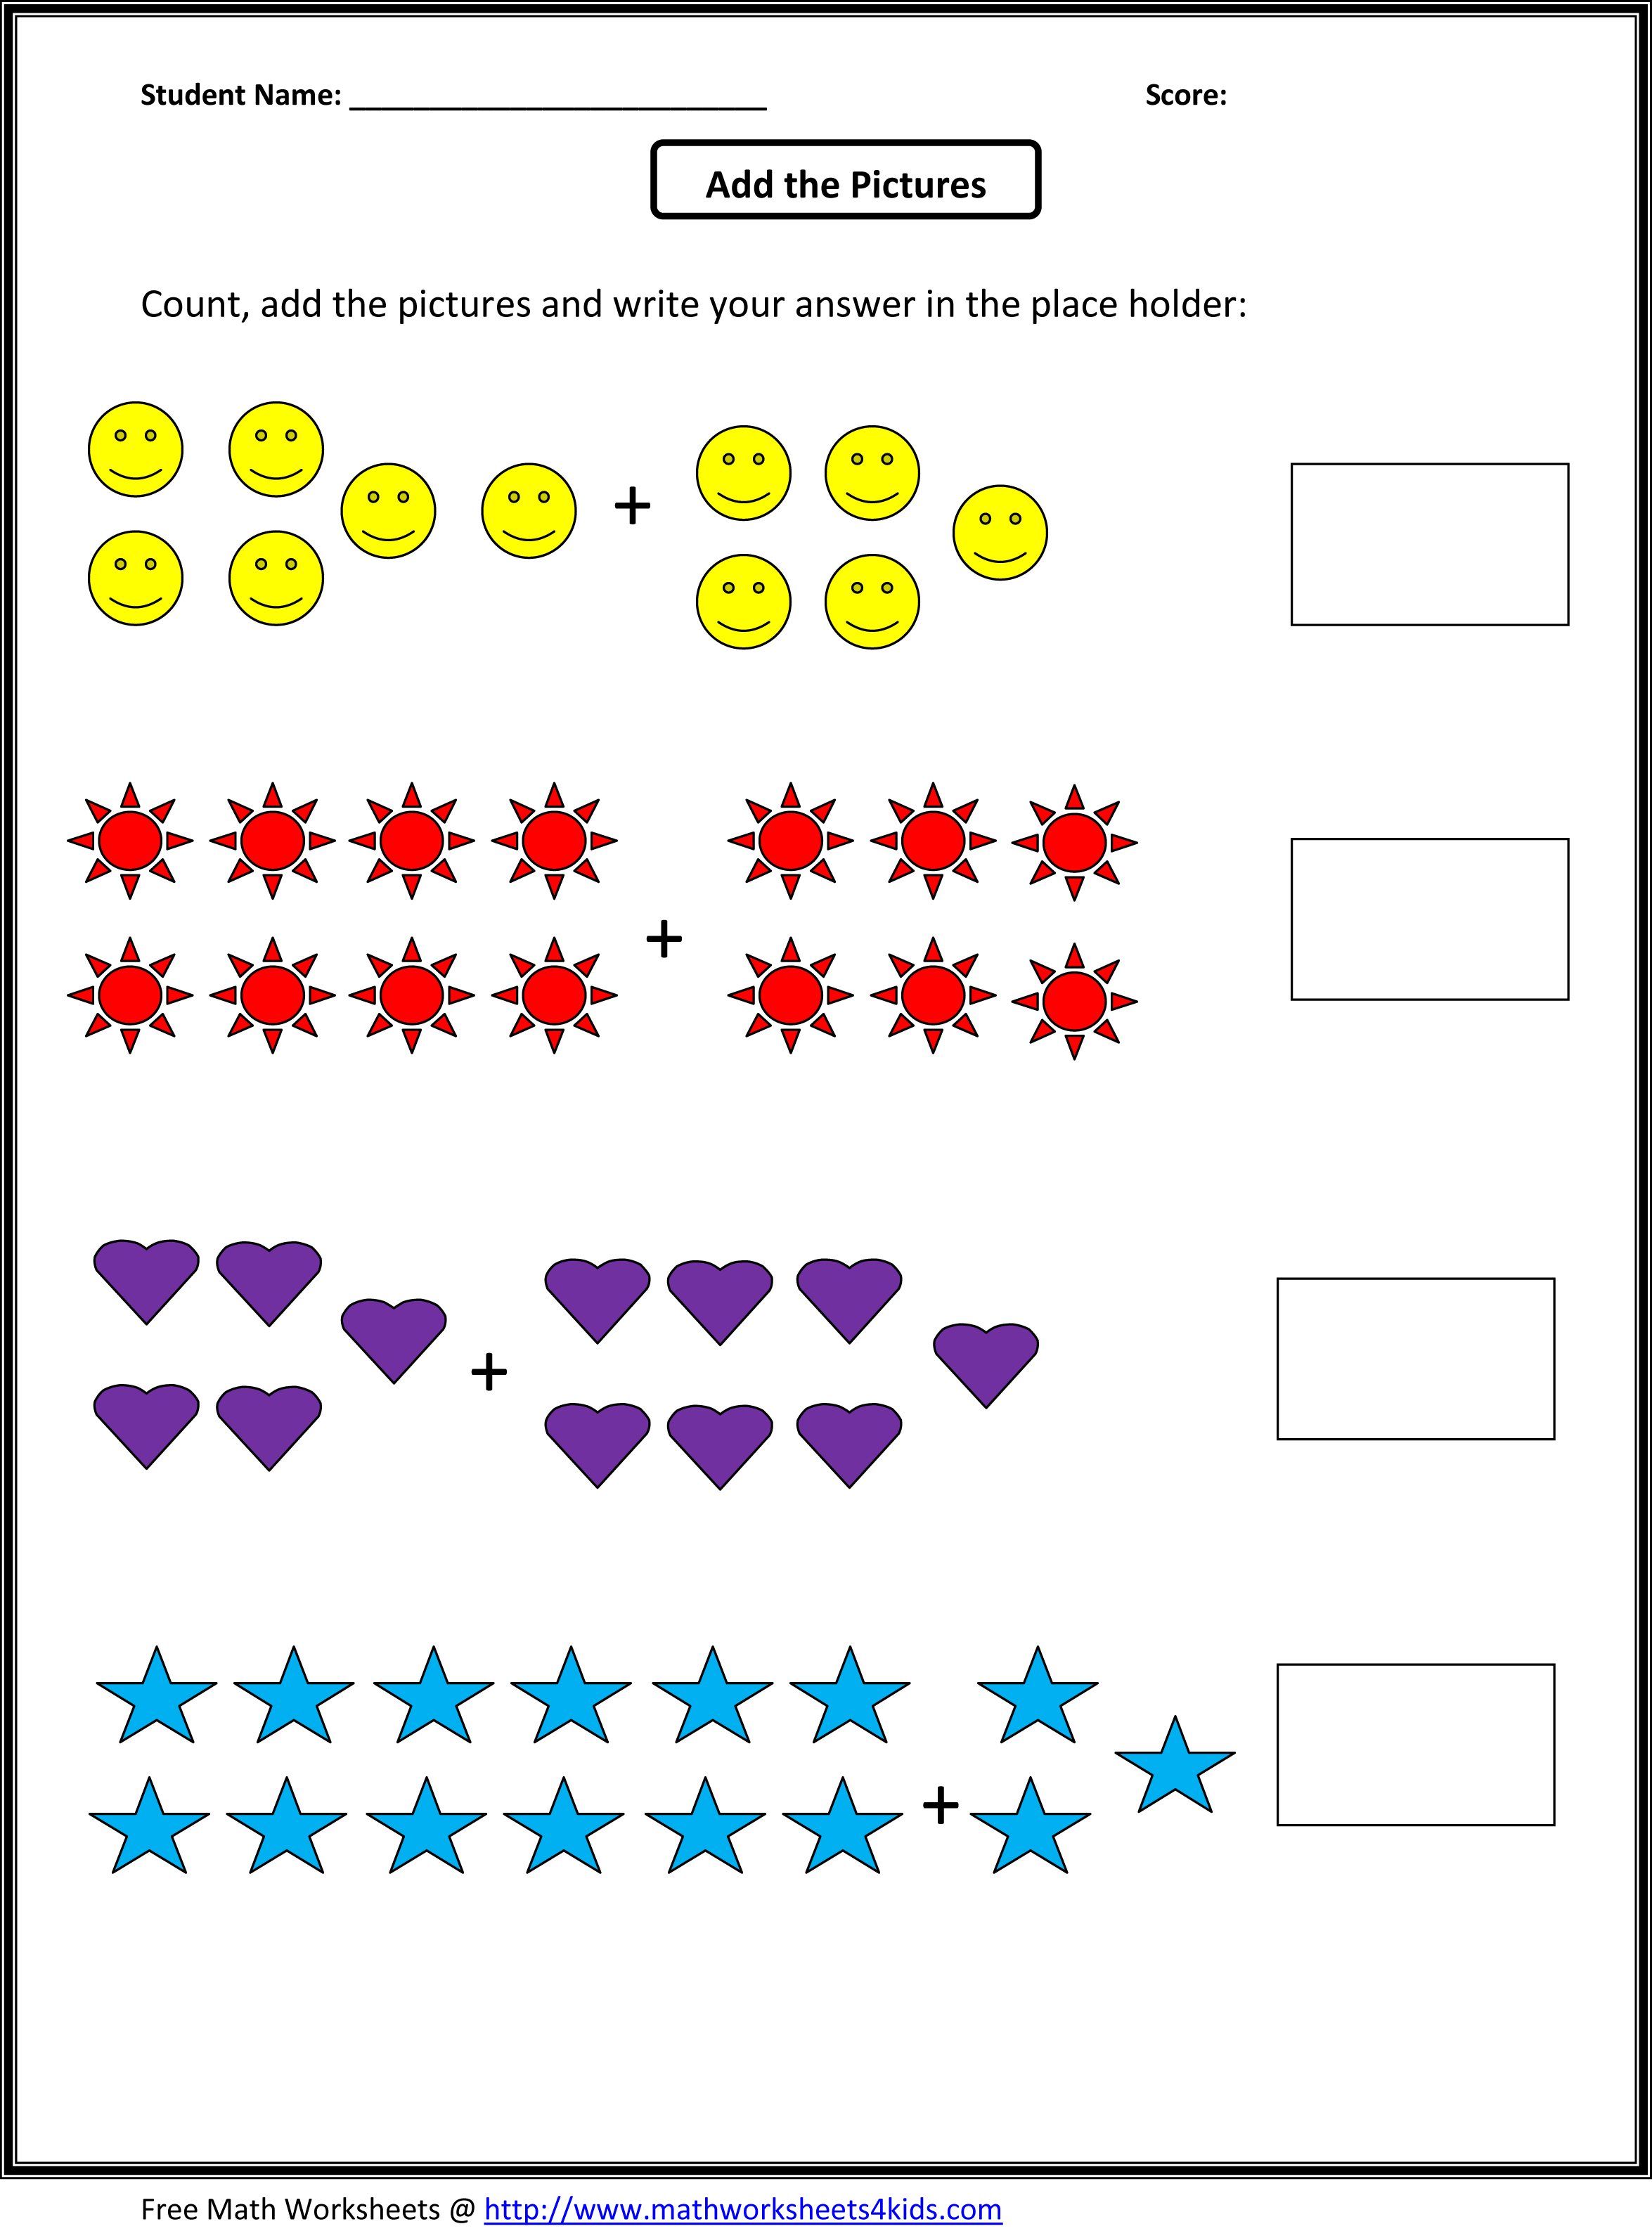 Proatmealus  Fascinating Grade  Maths Worksheet  Reocurent With Extraordinary Math Worksheets For St Grade Free  Reocurent With Astonishing Music Appreciation Worksheets Also Wellness Worksheet In Addition What Is Worksheet And  Times Table Worksheets As Well As Th Grade Context Clues Worksheets Additionally Compound Inequalities Worksheets From Reocurentcom With Proatmealus  Extraordinary Grade  Maths Worksheet  Reocurent With Astonishing Math Worksheets For St Grade Free  Reocurent And Fascinating Music Appreciation Worksheets Also Wellness Worksheet In Addition What Is Worksheet From Reocurentcom